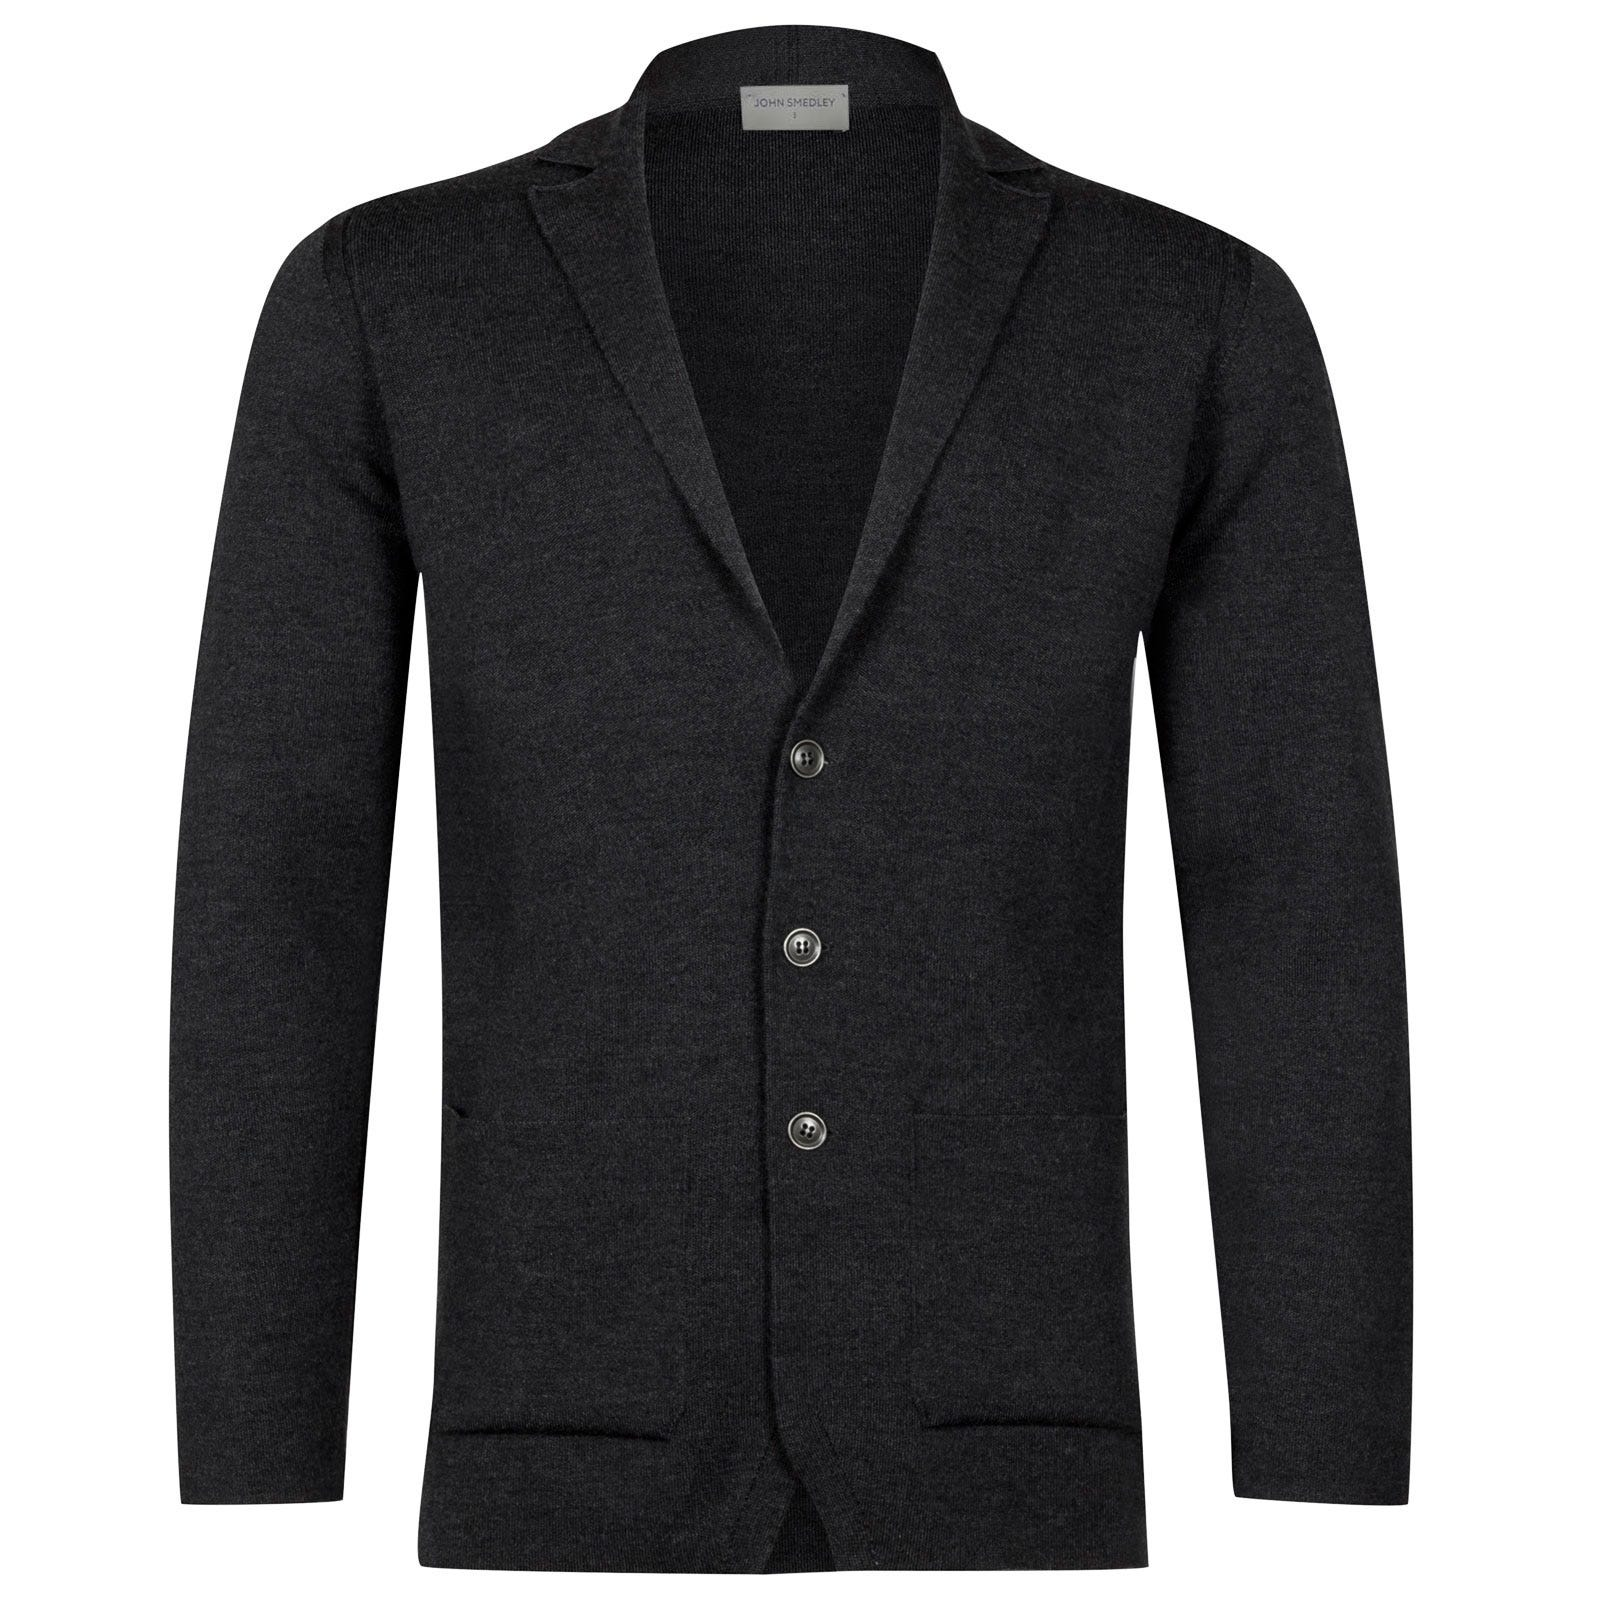 John Smedley Oxland Merino Wool Jacket in Charcoal-XL